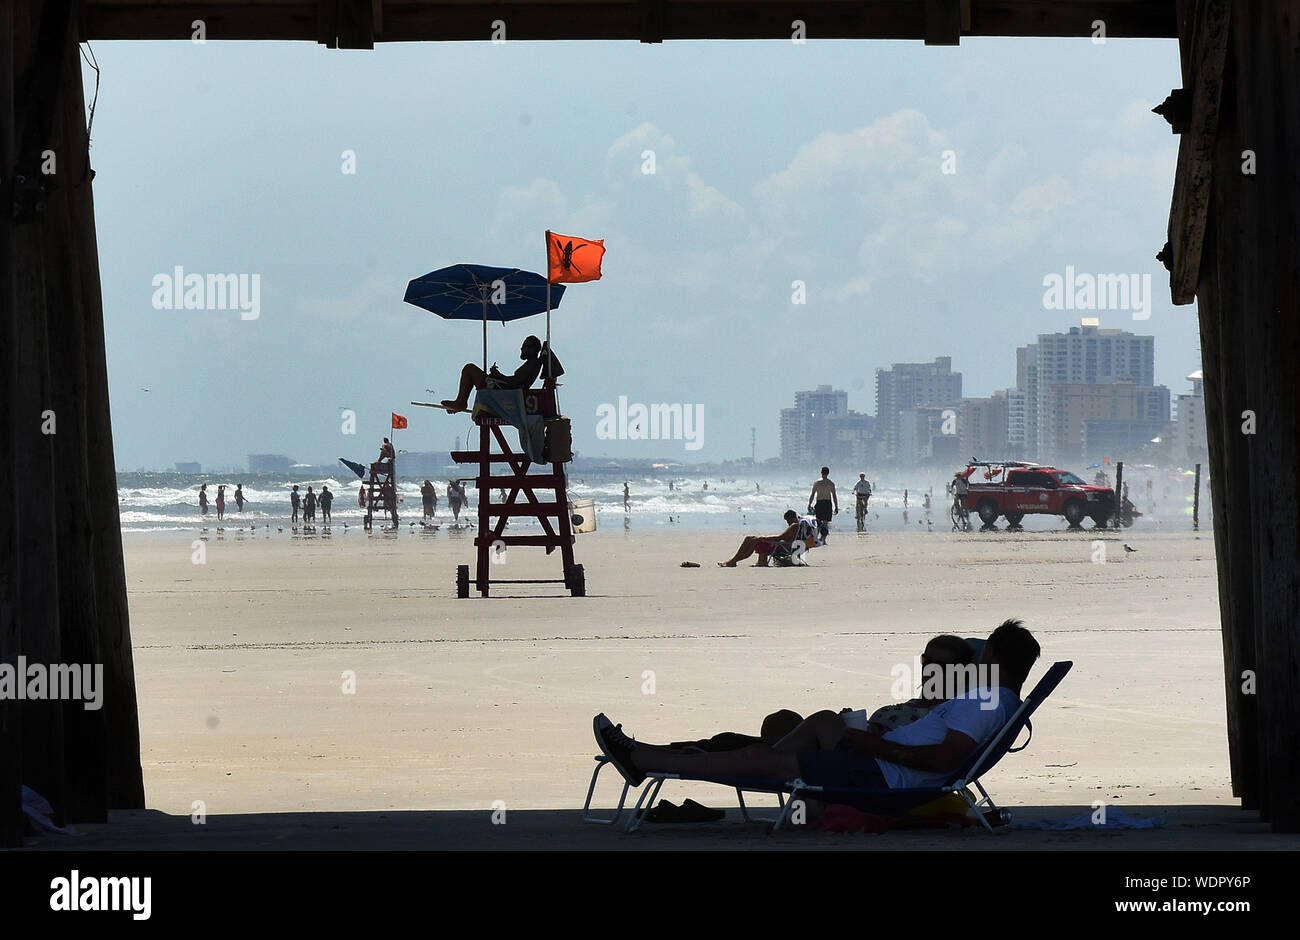 Titusville, FL, USA. 29th Aug, 2019. People relax at the shade under the Daytona Beach pier several days ahead of the Hurricane Dorian which is expected to become a Category 4 hurricane before making landfall in Florida on Labor Day. Credit: Paul Hennessy/SOPA Images/ZUMA Wire/Alamy Live News Stock Photo